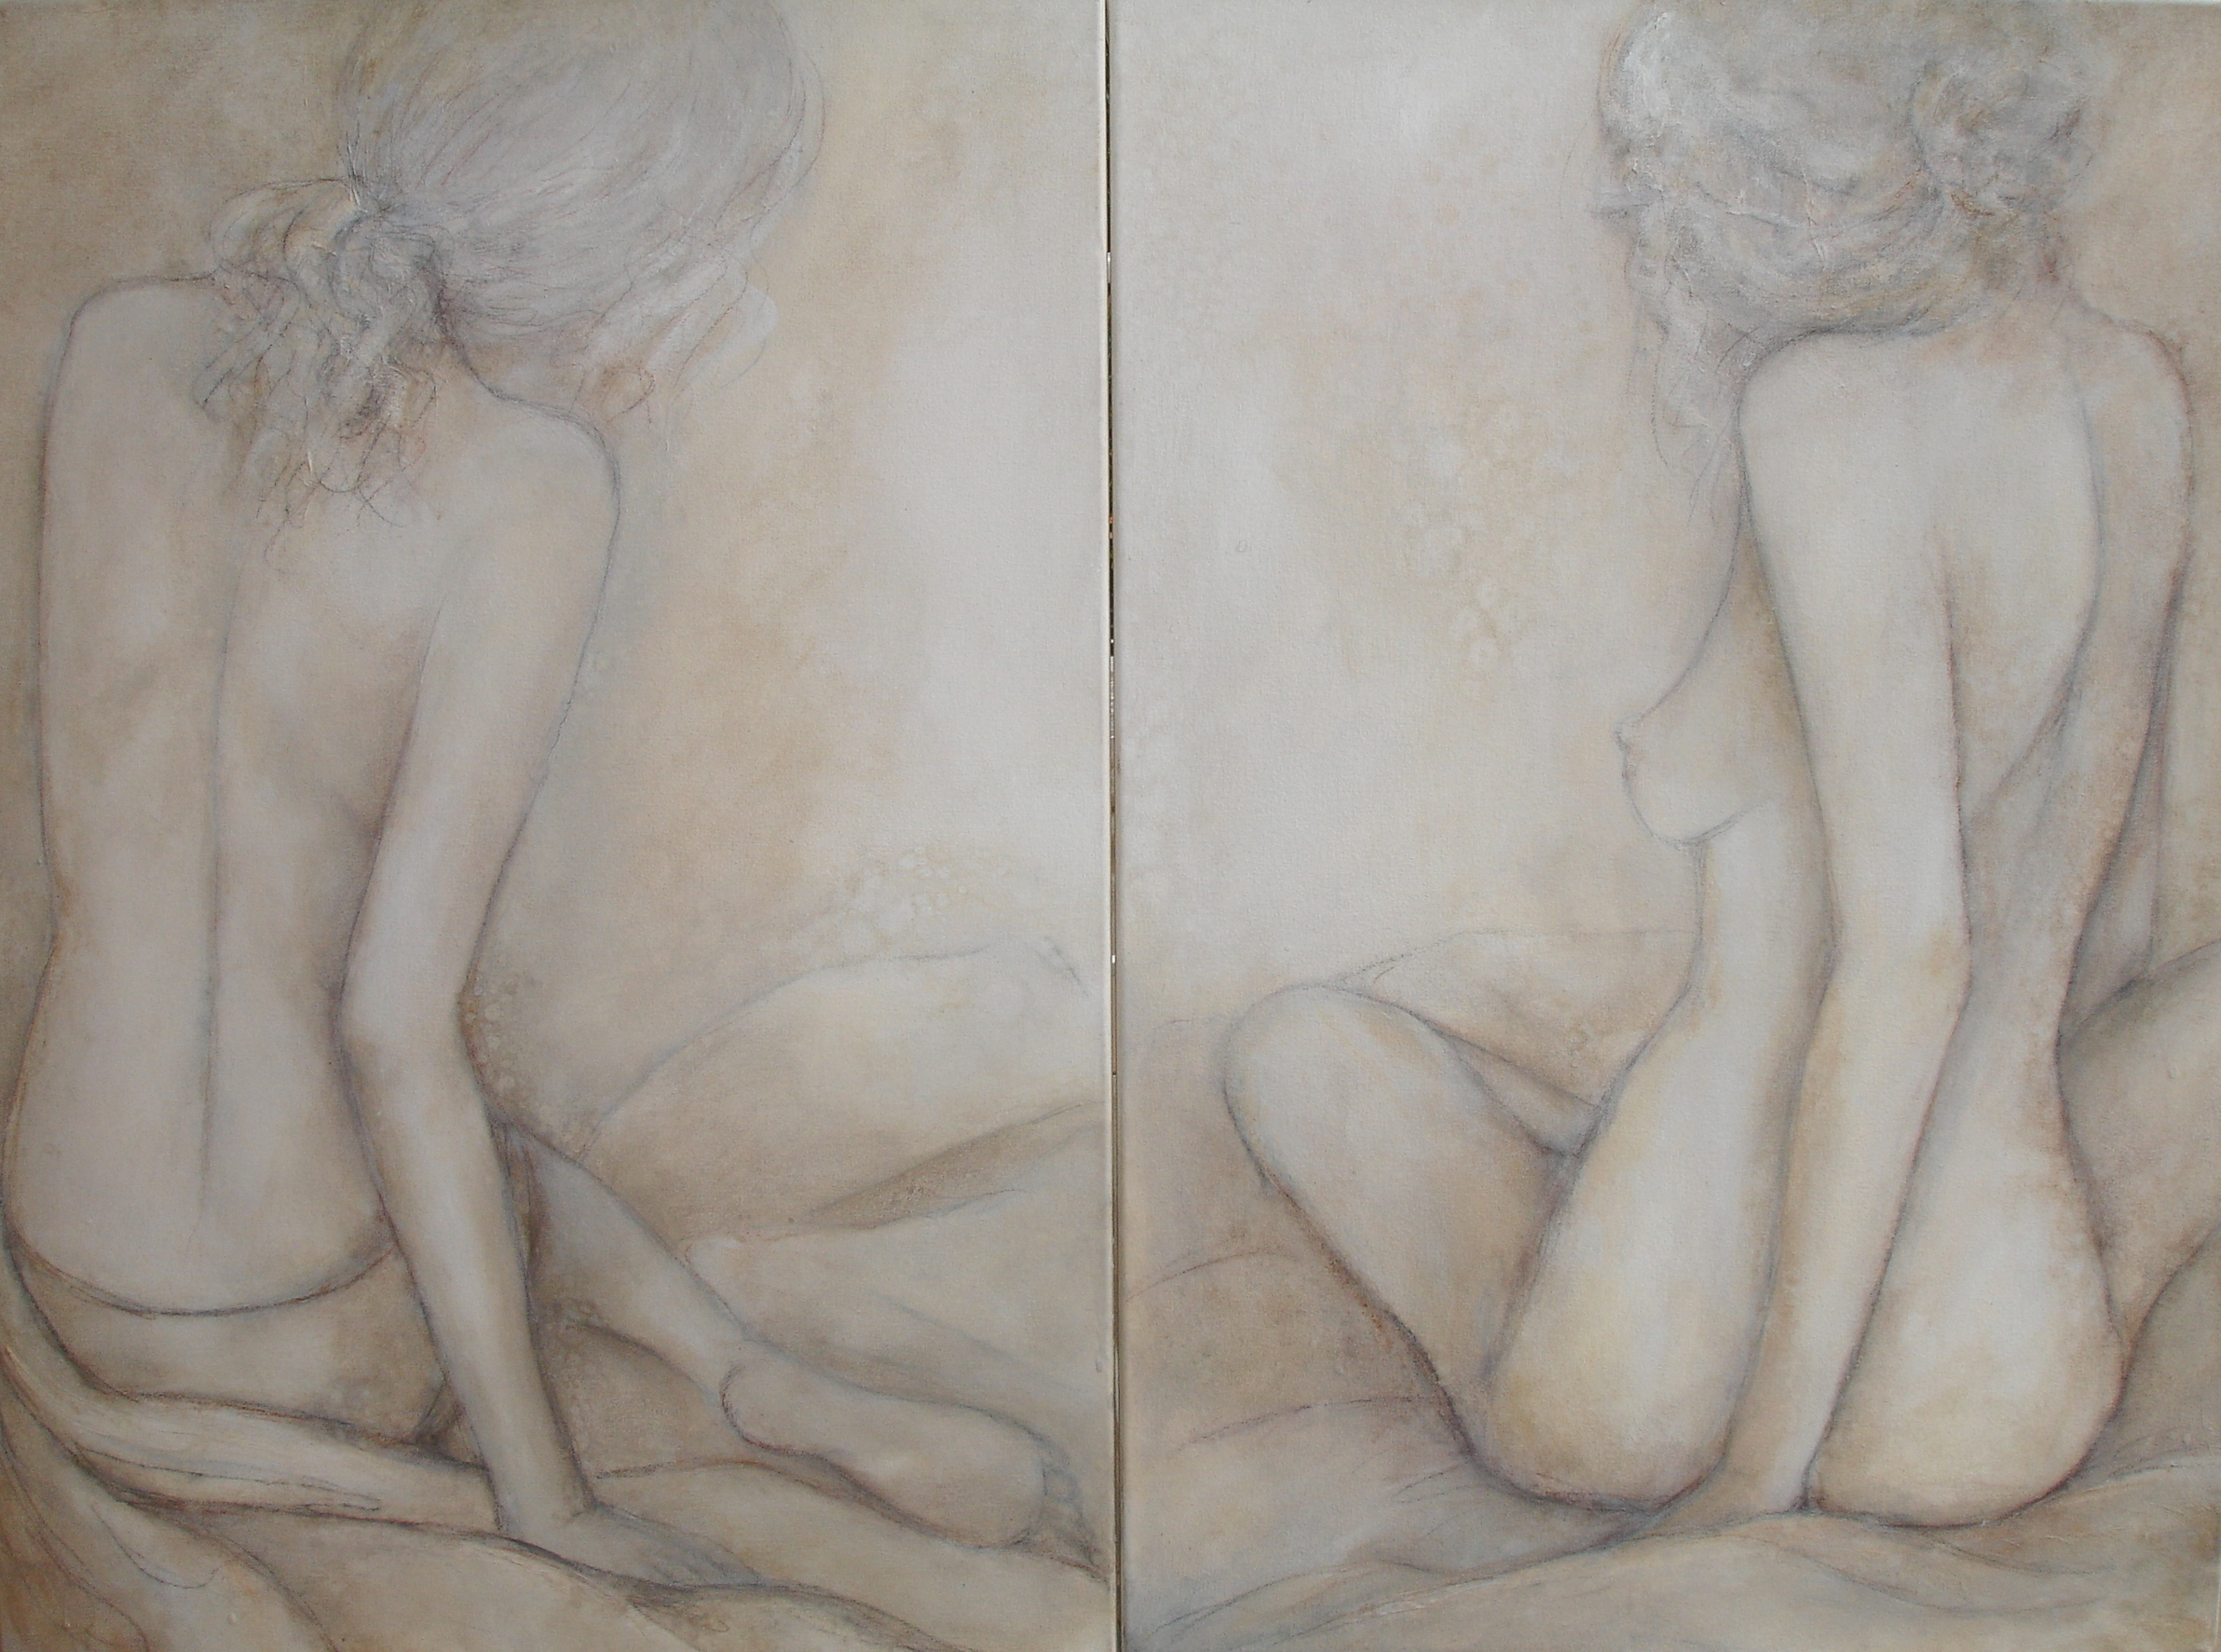 Classic Nudes, 52 x 76 each